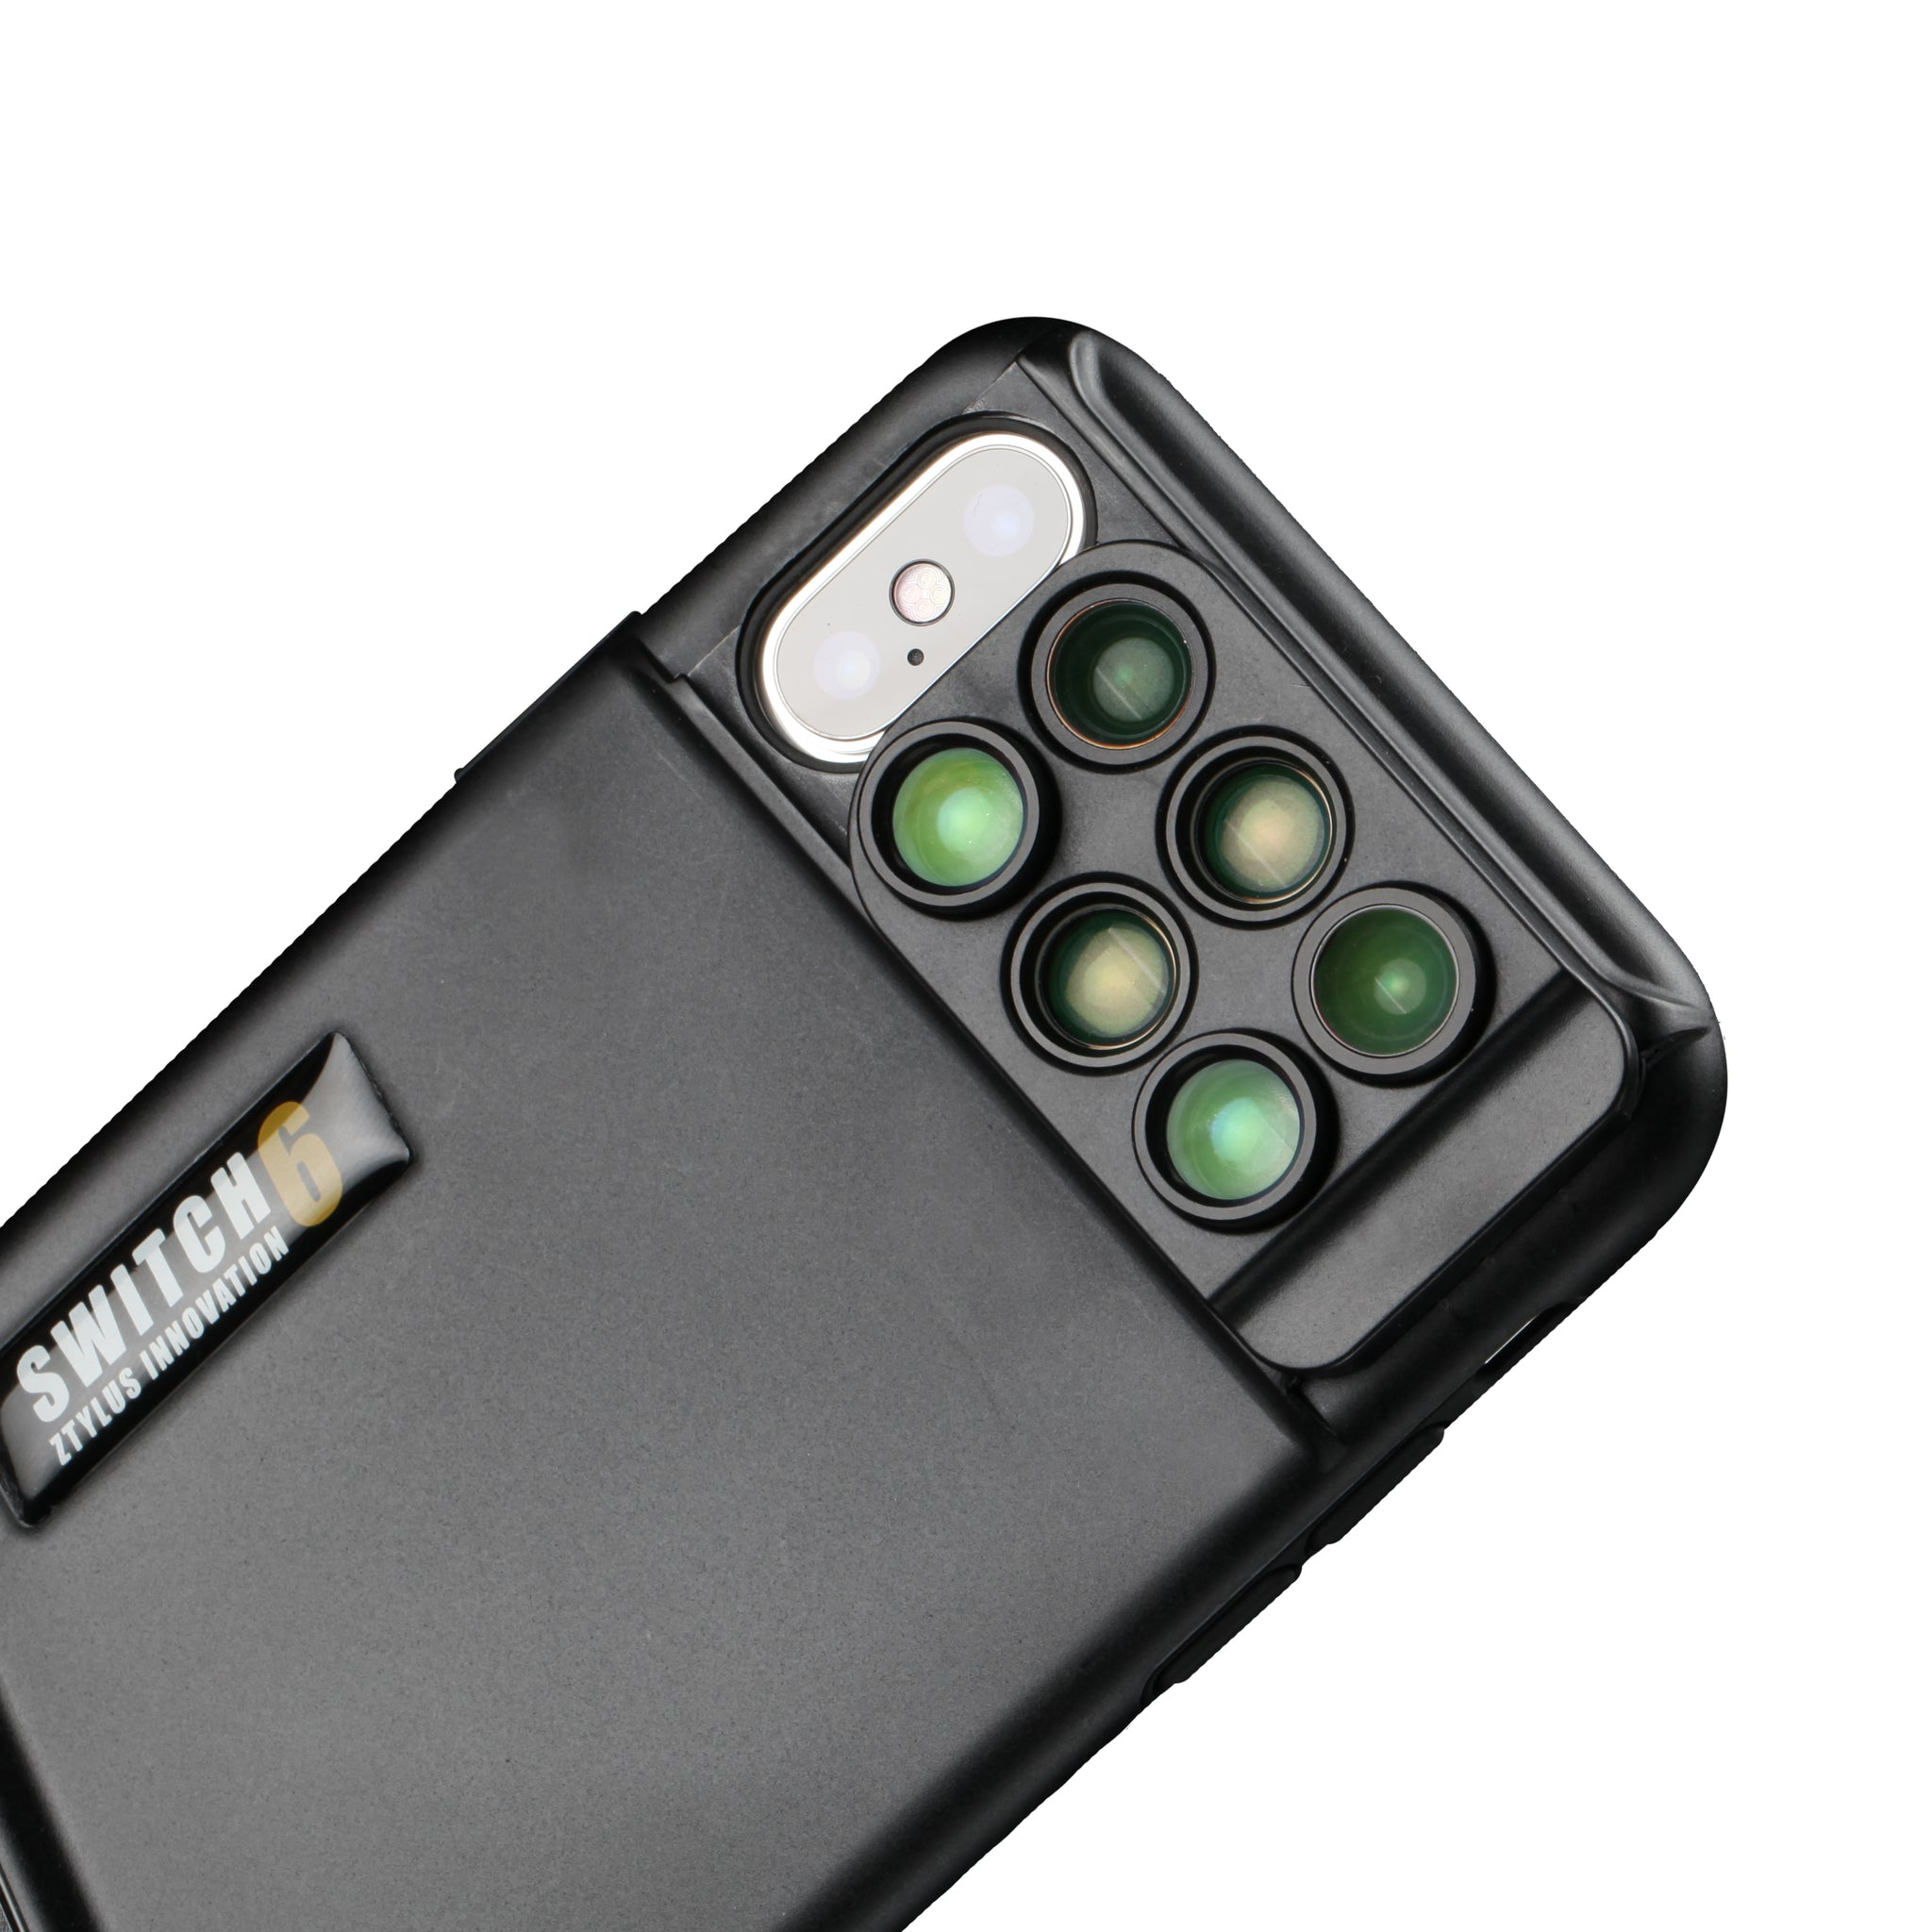 san francisco cab68 5ce84 Switch 6 MK I for iPhone X / XS